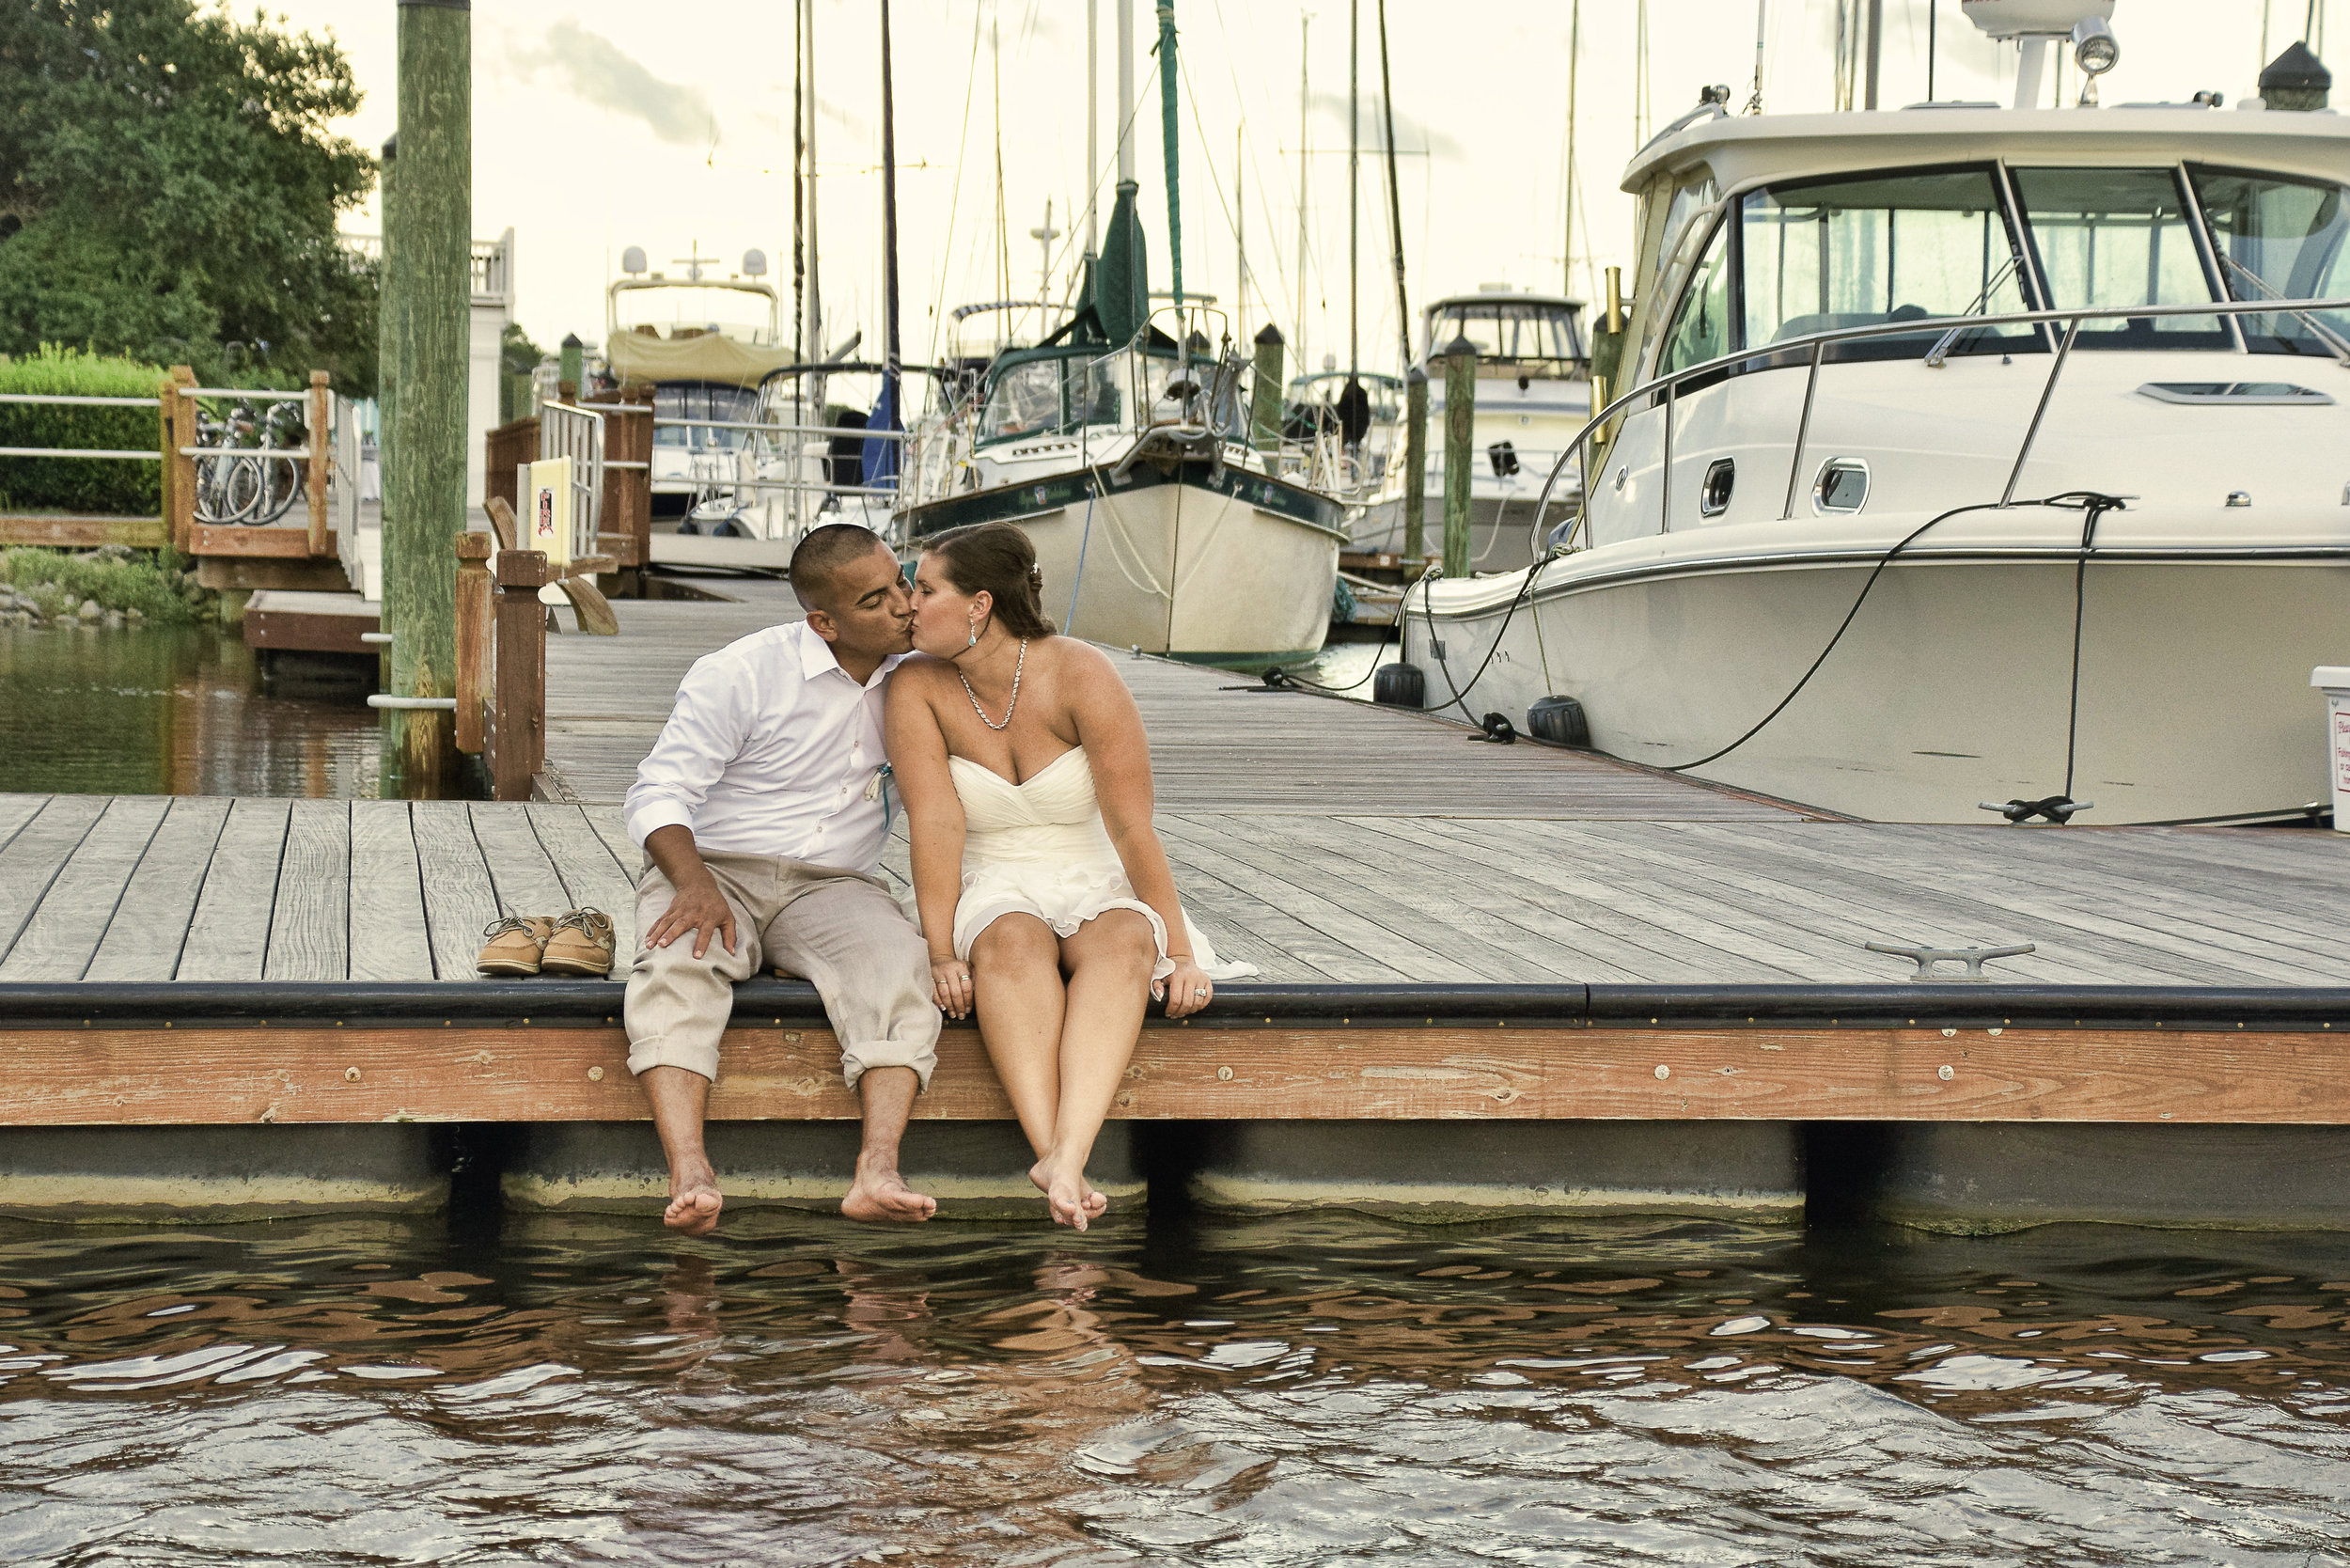 Kiss on the dock.